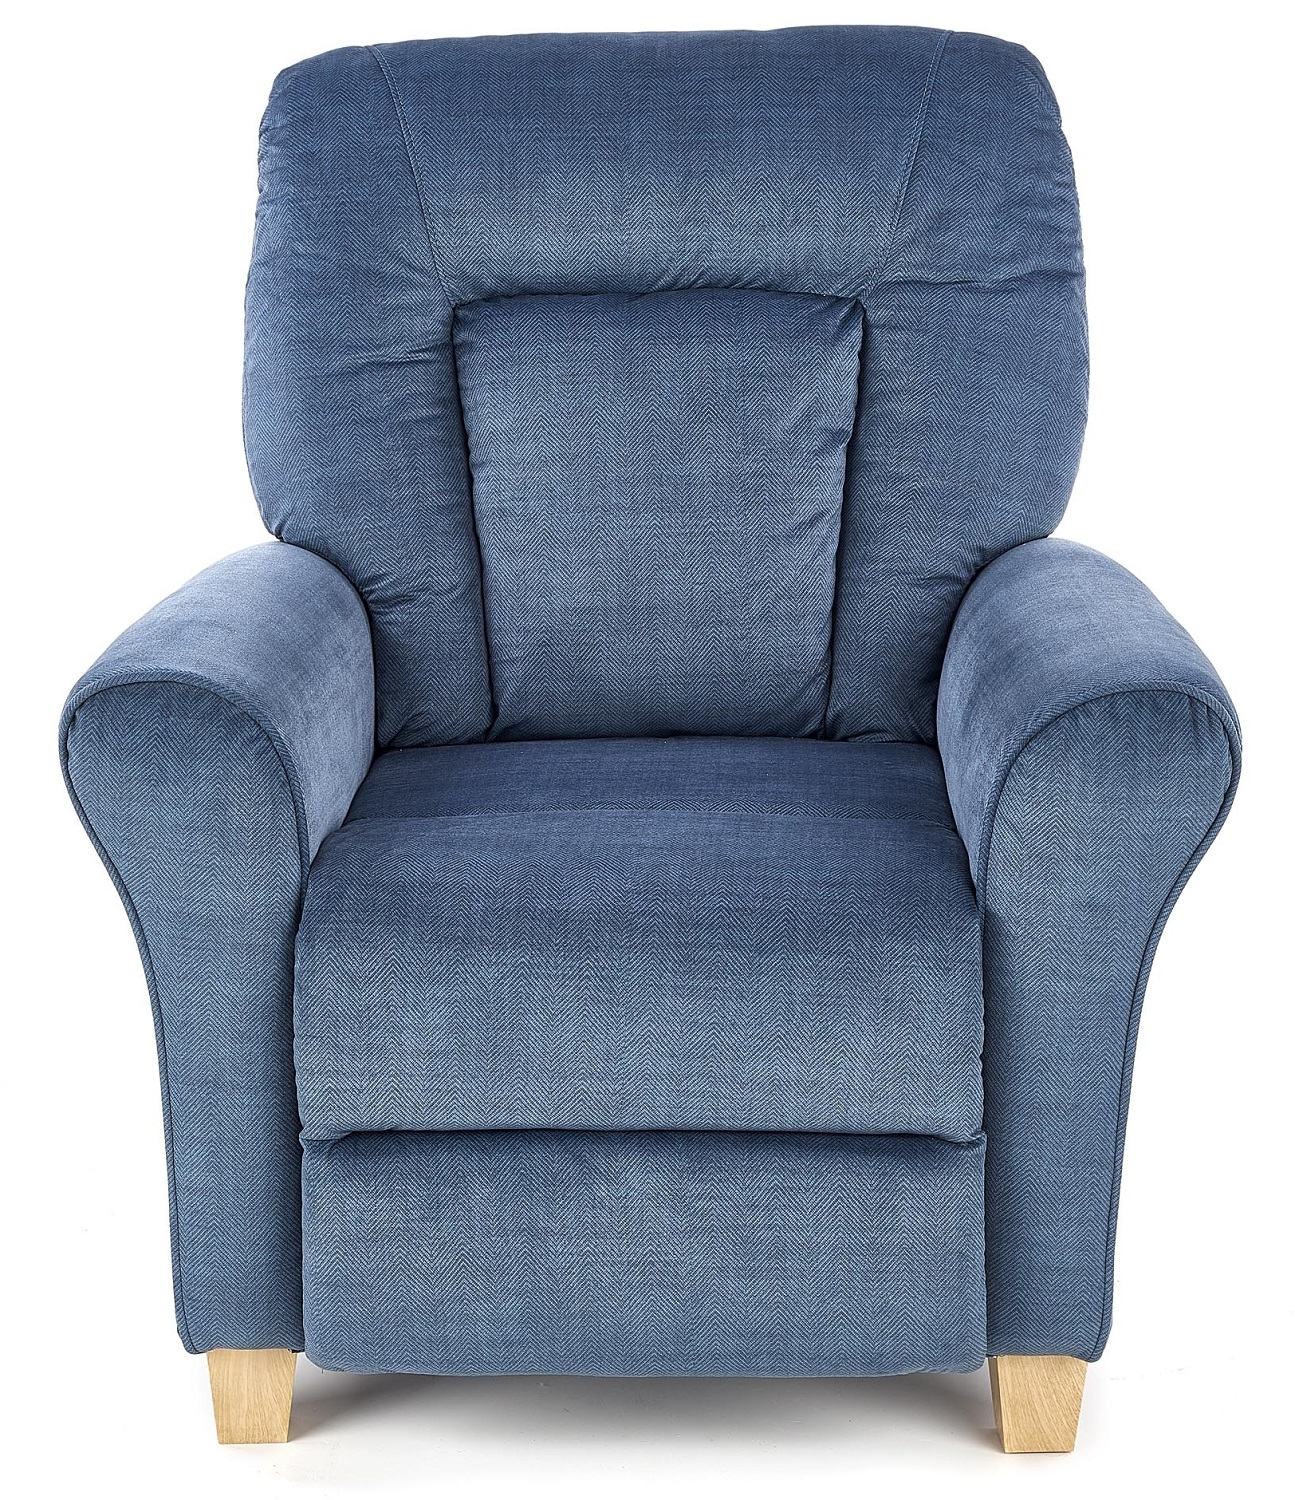 Fauteuil Bard in donkerblauw | Home Style